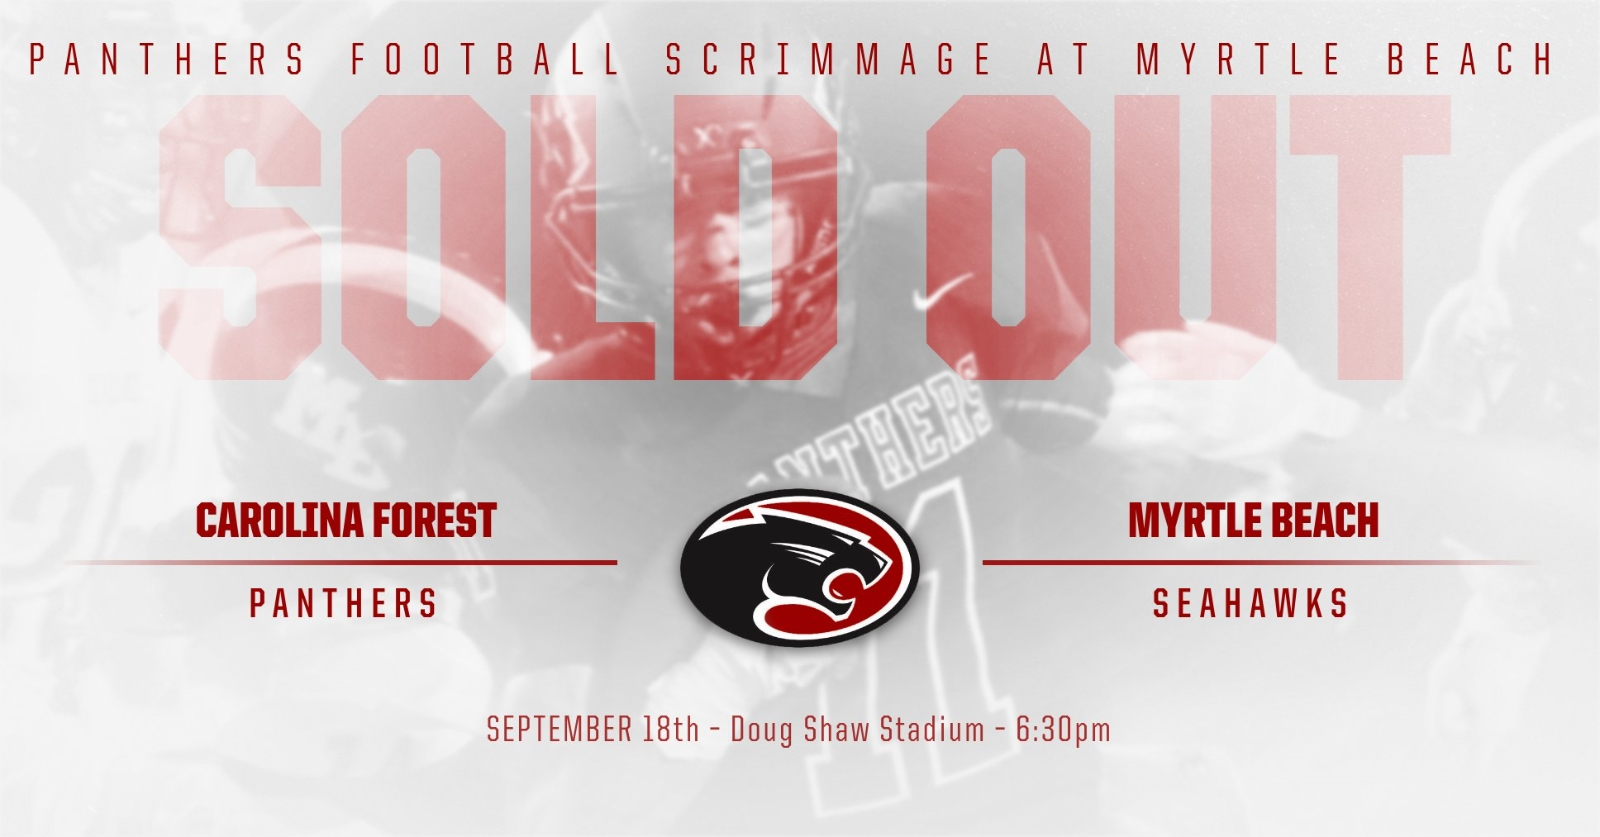 Panthers at Myrtle Beach High School Football Scrimmage- Sold Out